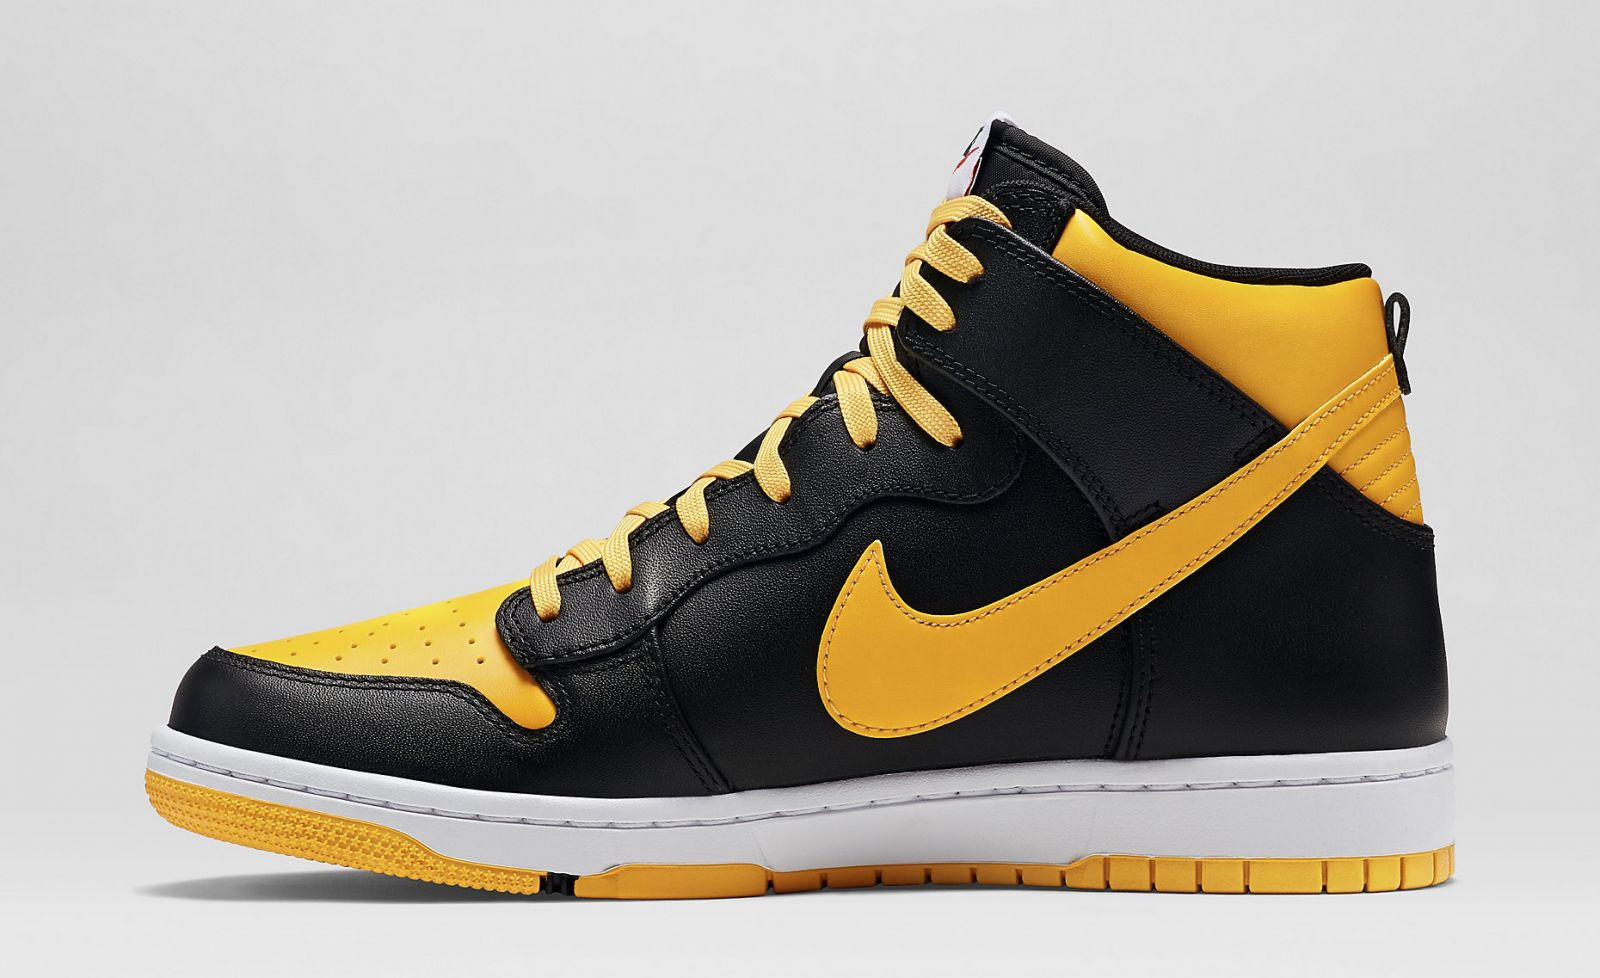 best sneakers 03379 9c5f4 More Nike Dunks That Look Like Air Jordans   Sole Collector